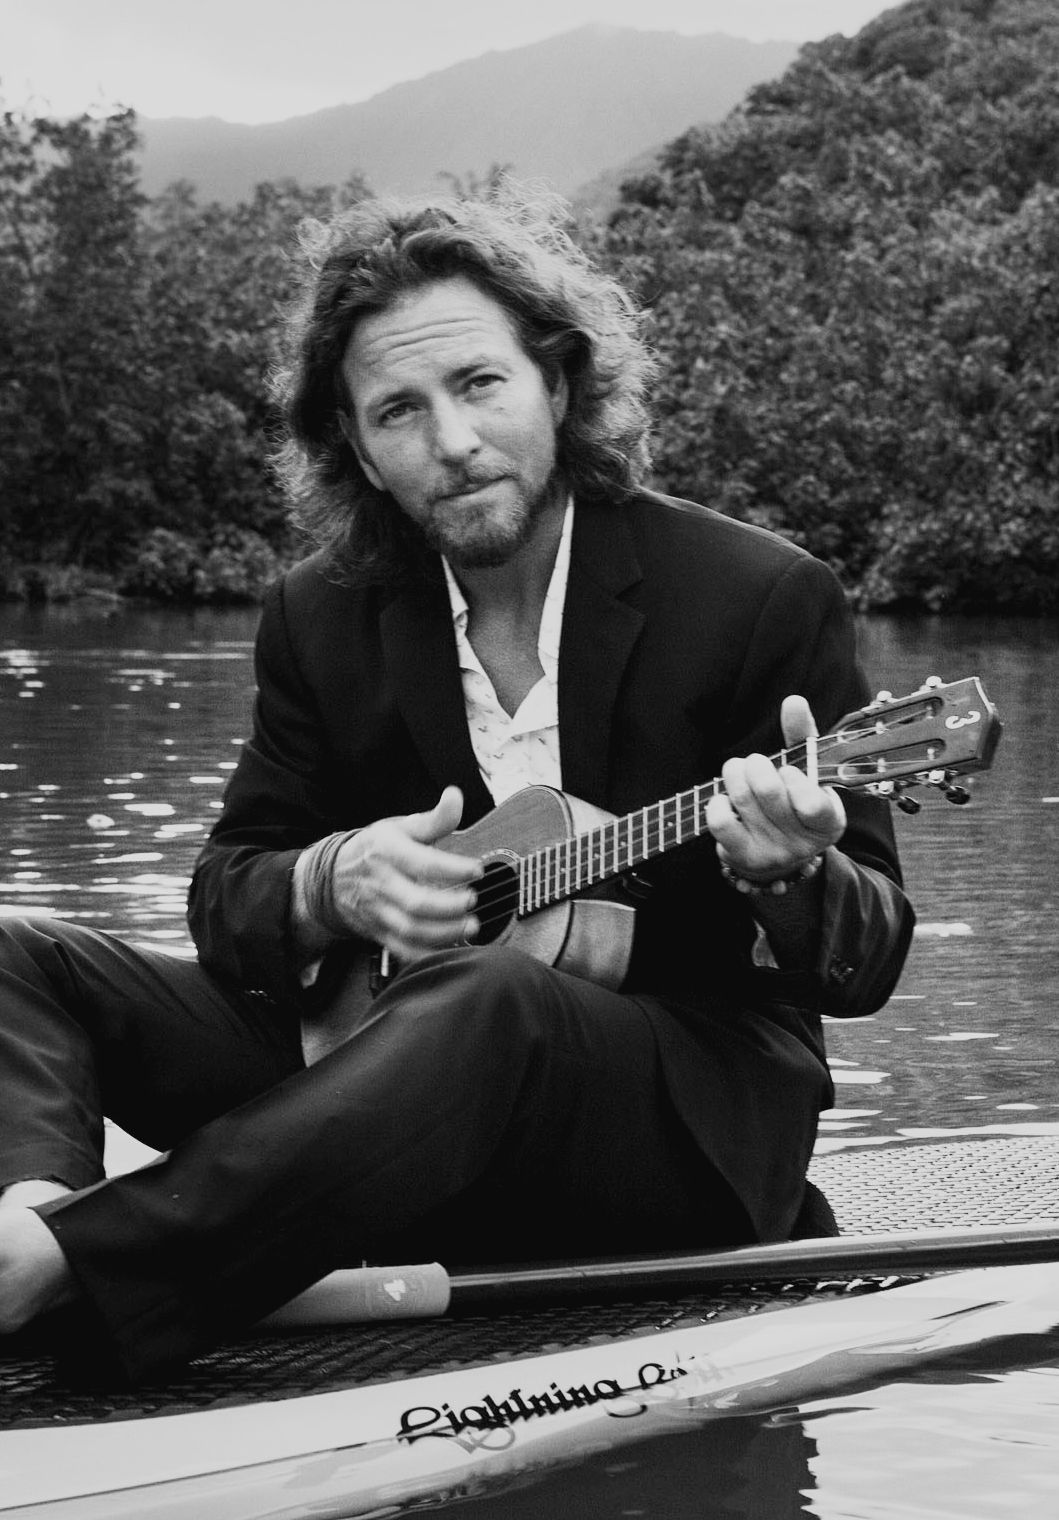 Eddie vedder photo rock and roll pinterest eddie vedder eddie vedder photo eddie vedder ukulele songsukulele chordspearl hexwebz Choice Image